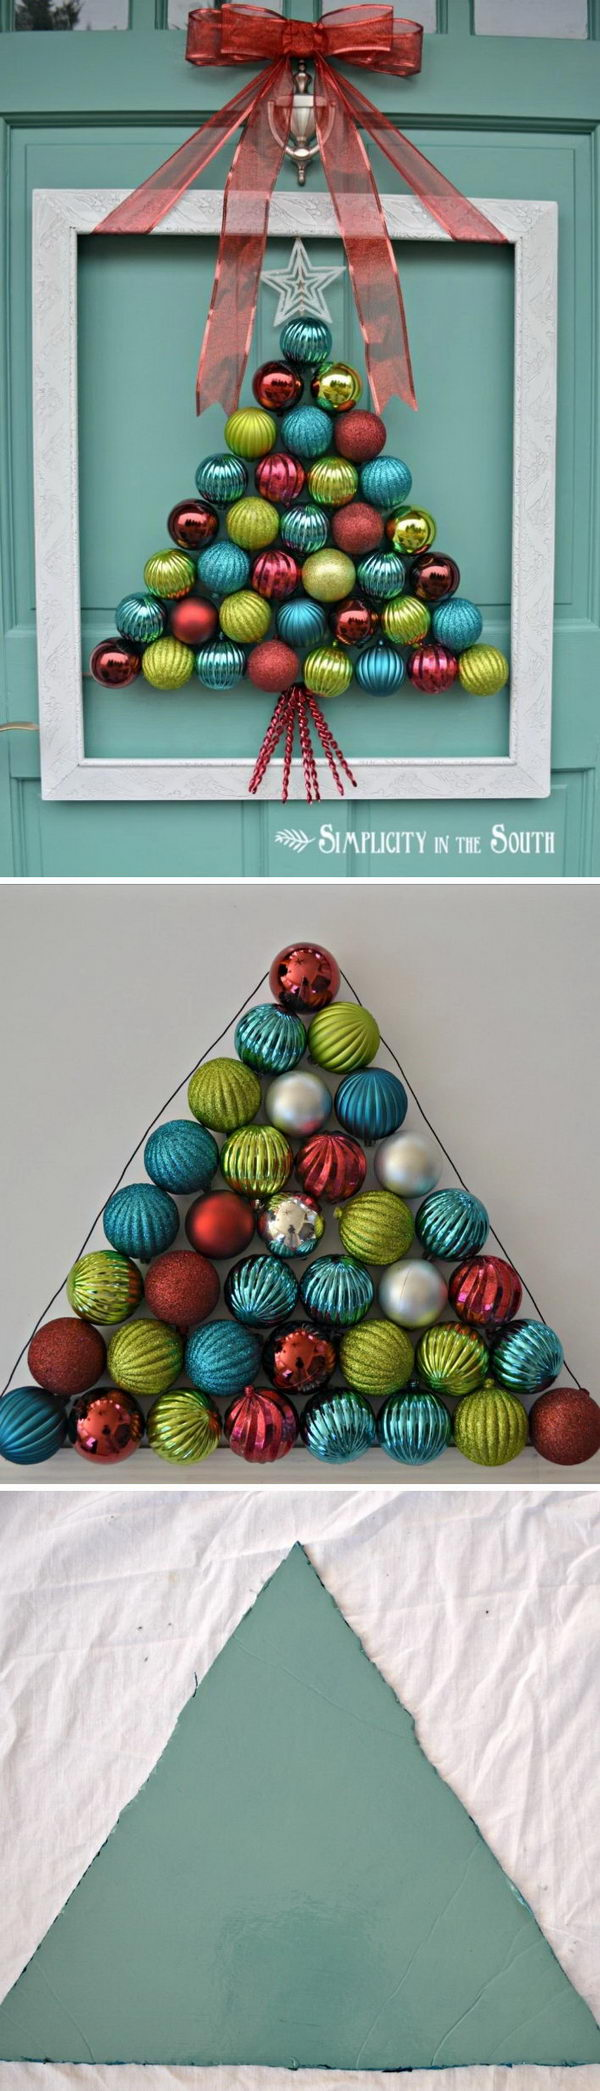 Framed Christmas Tree Ornament Wreath & 25 Awesome DIY Christmas Decorating Ideas and Tutorials 2017